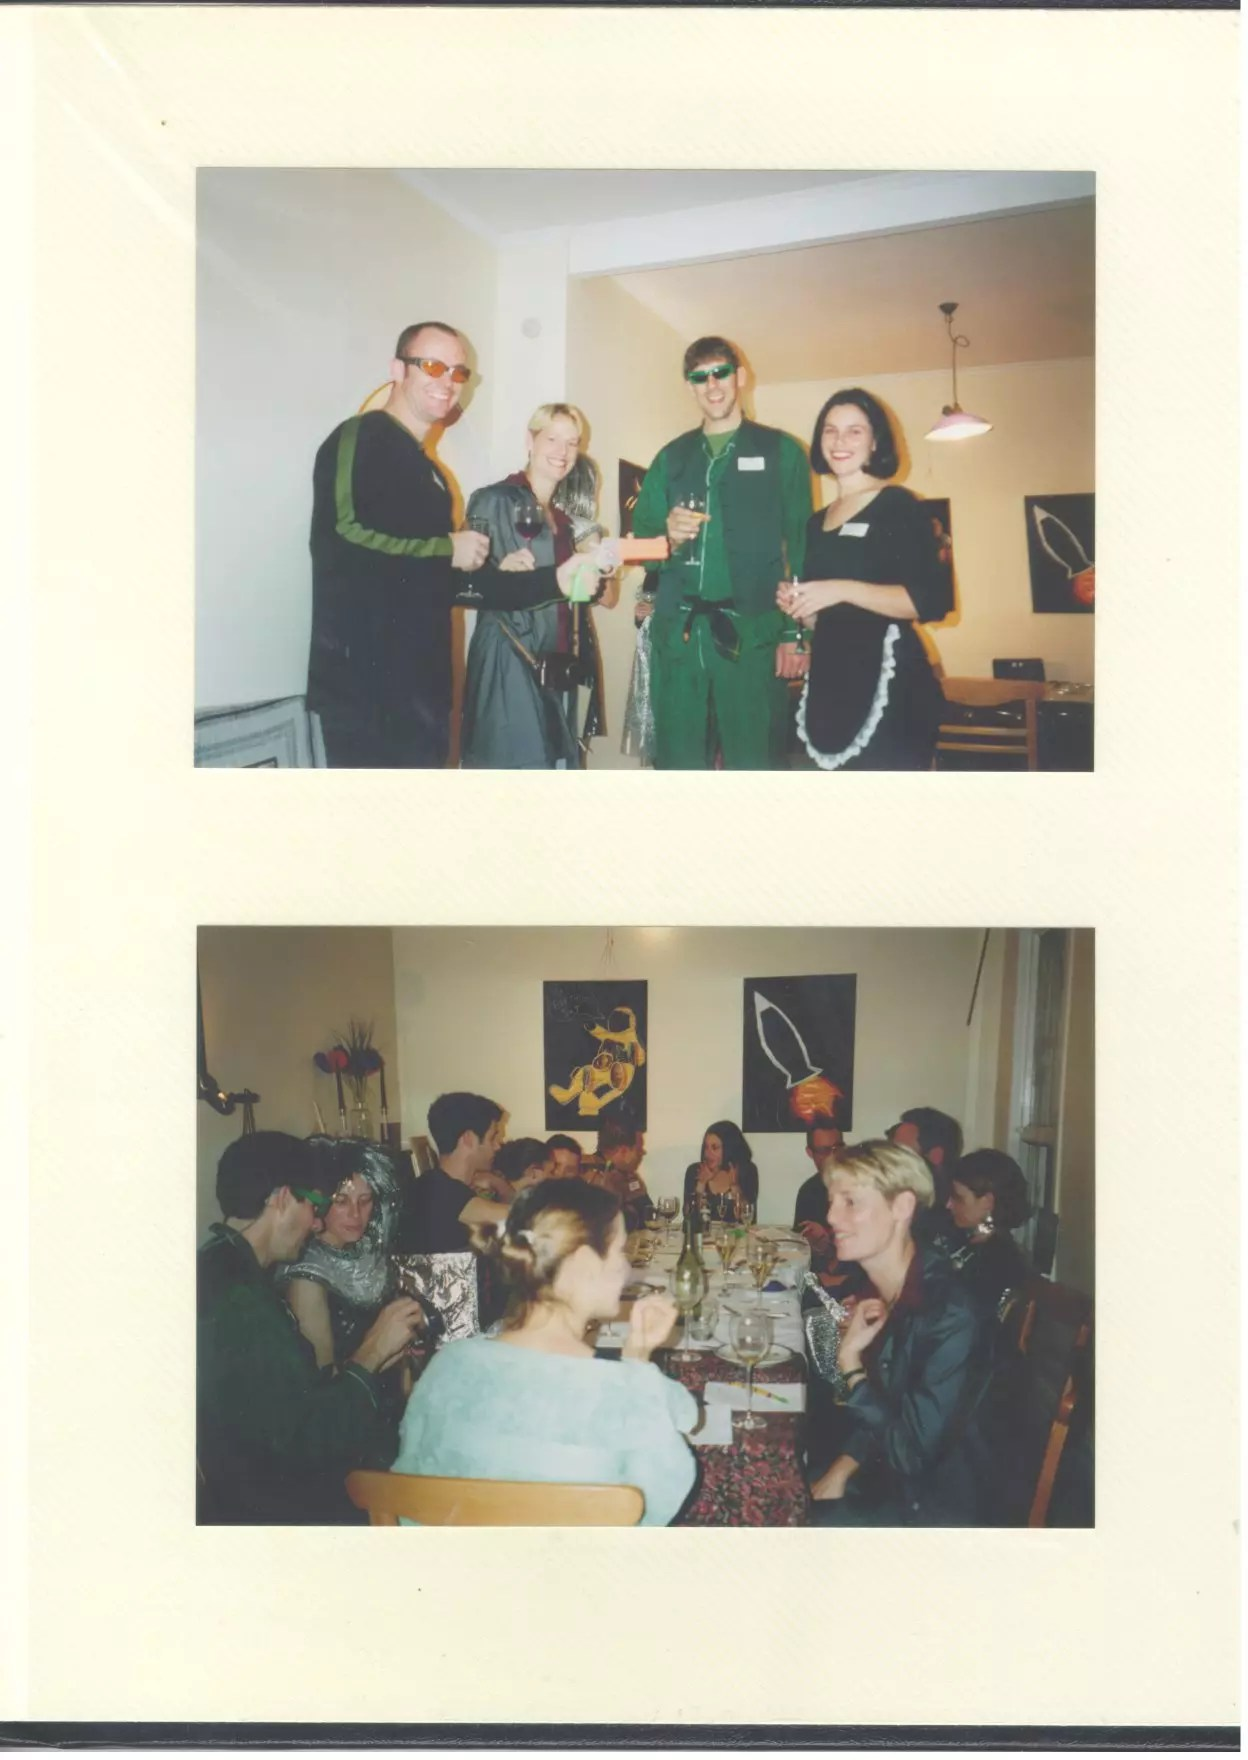 Sci-fi party photo